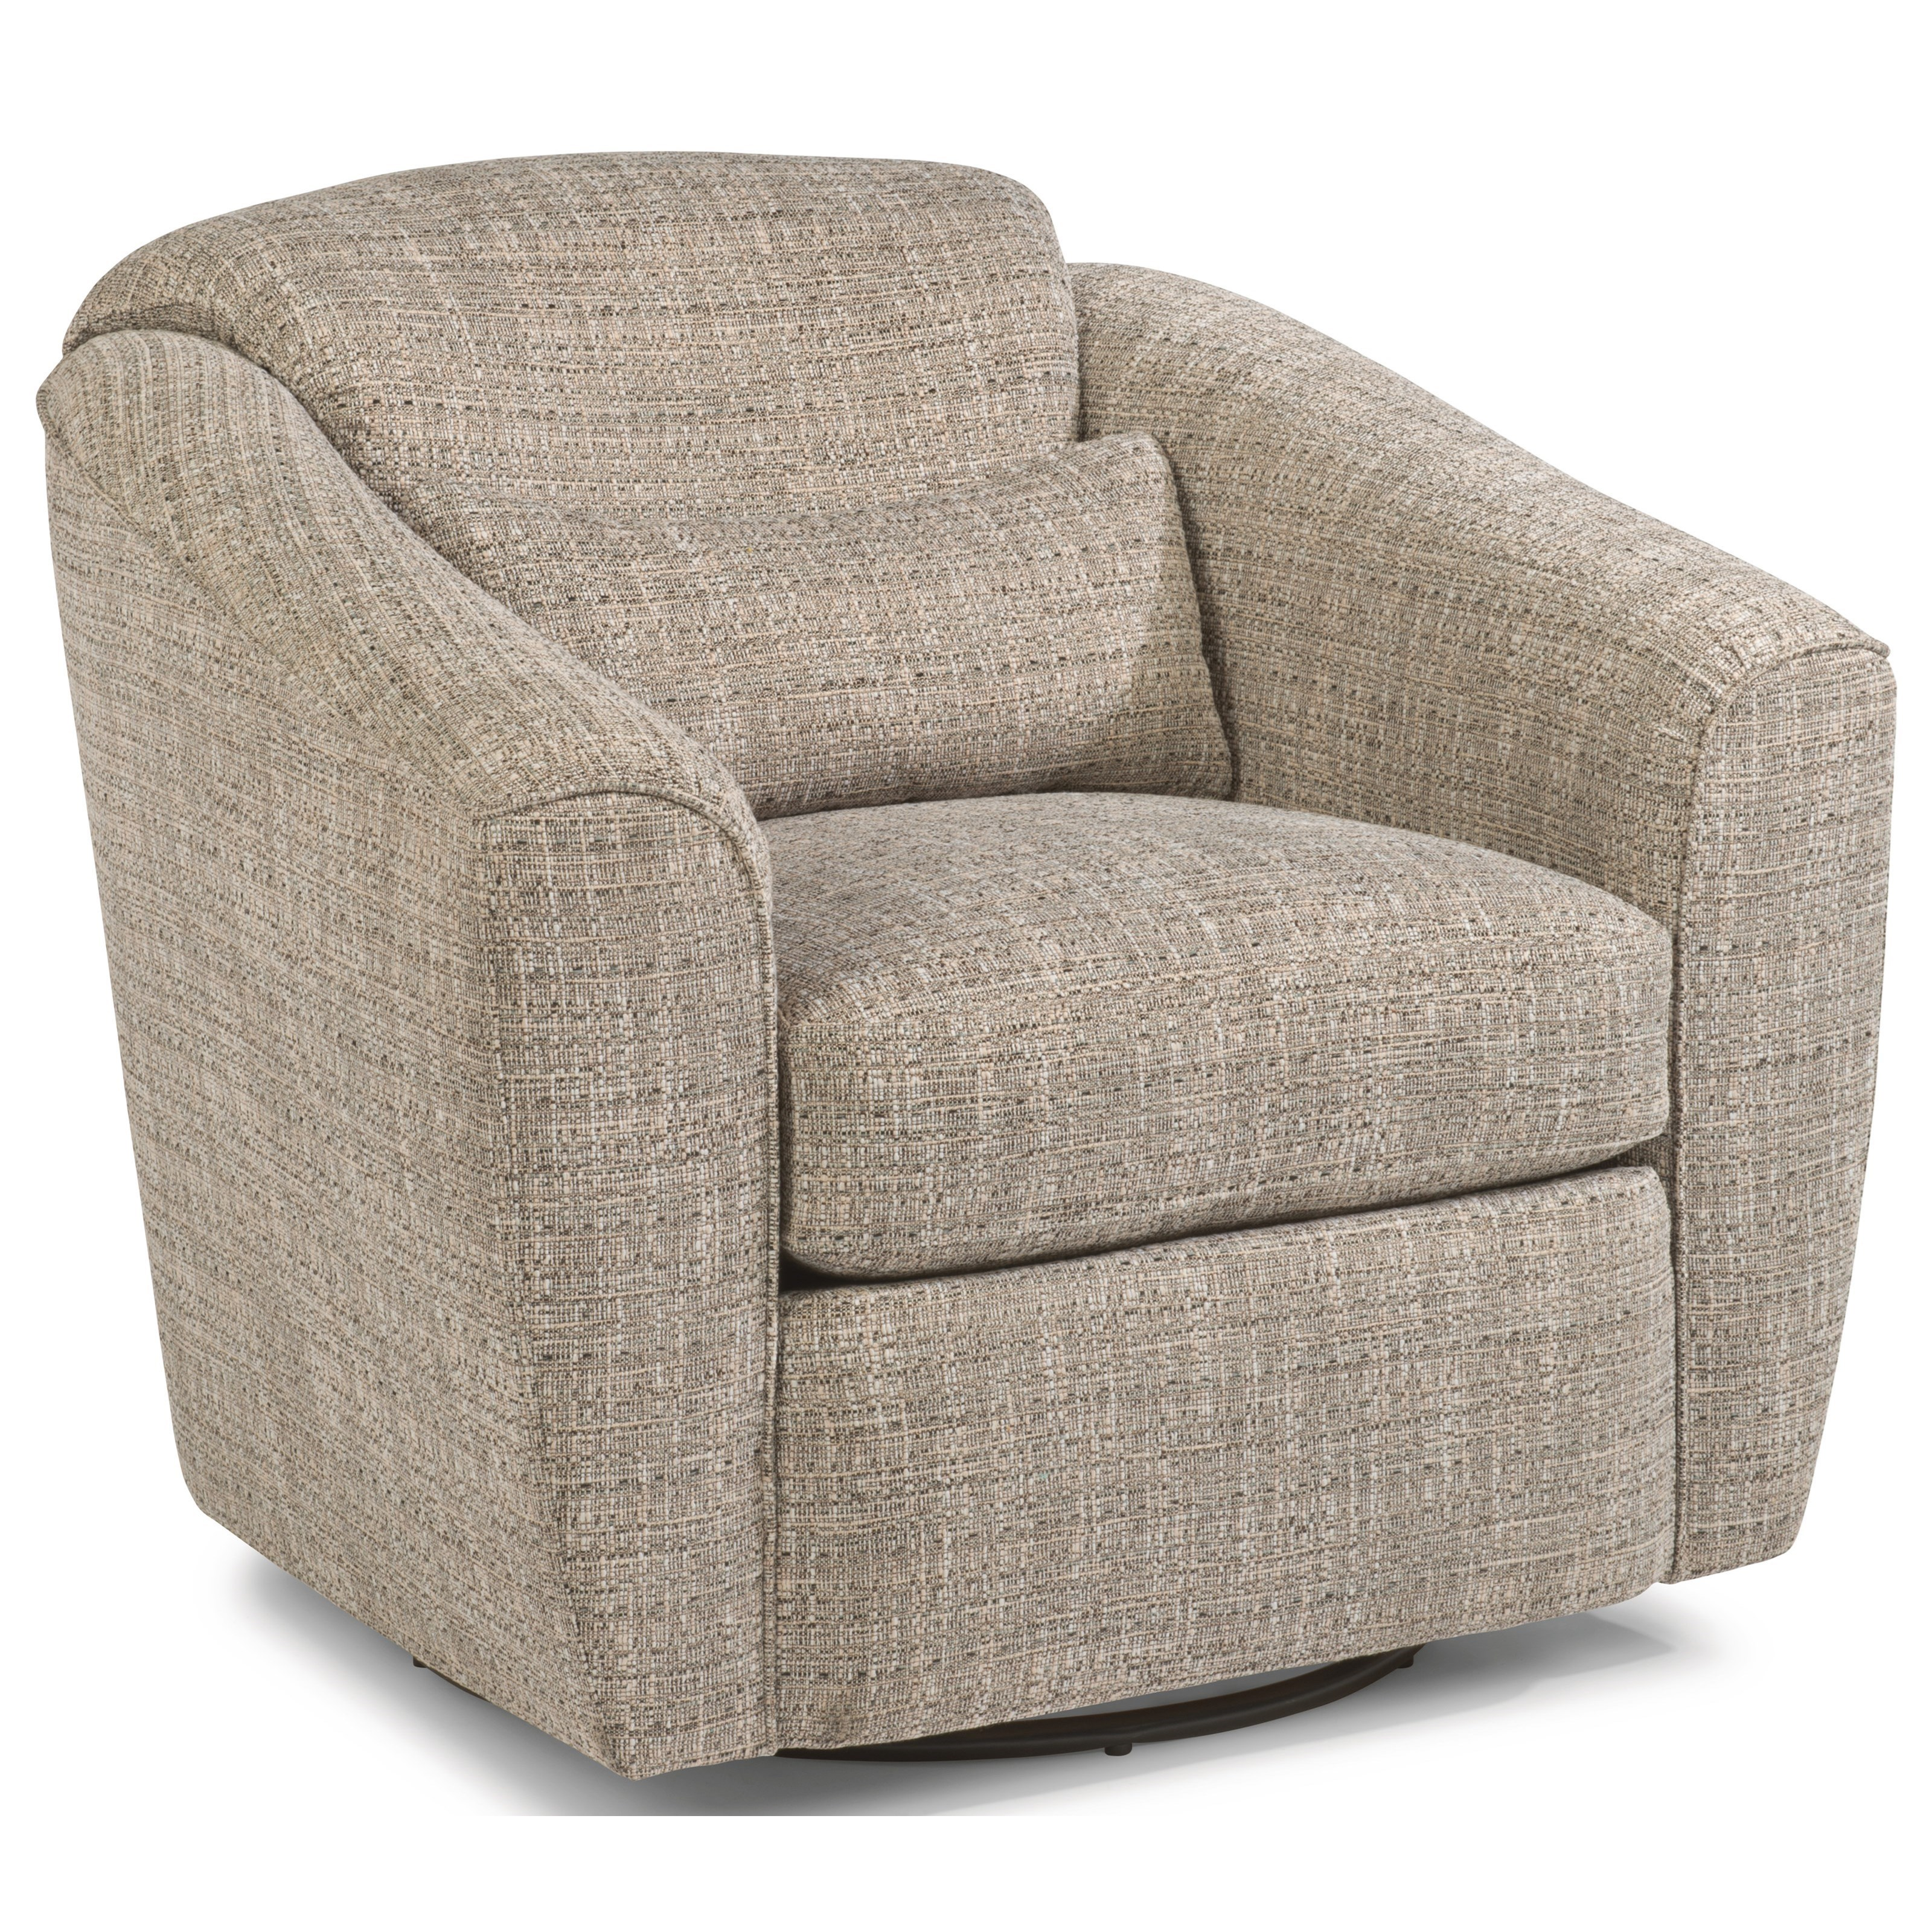 comfortable swivel chair inflatable outdoor sofa flexsteel jaxon casual rooms and rest upholstered by